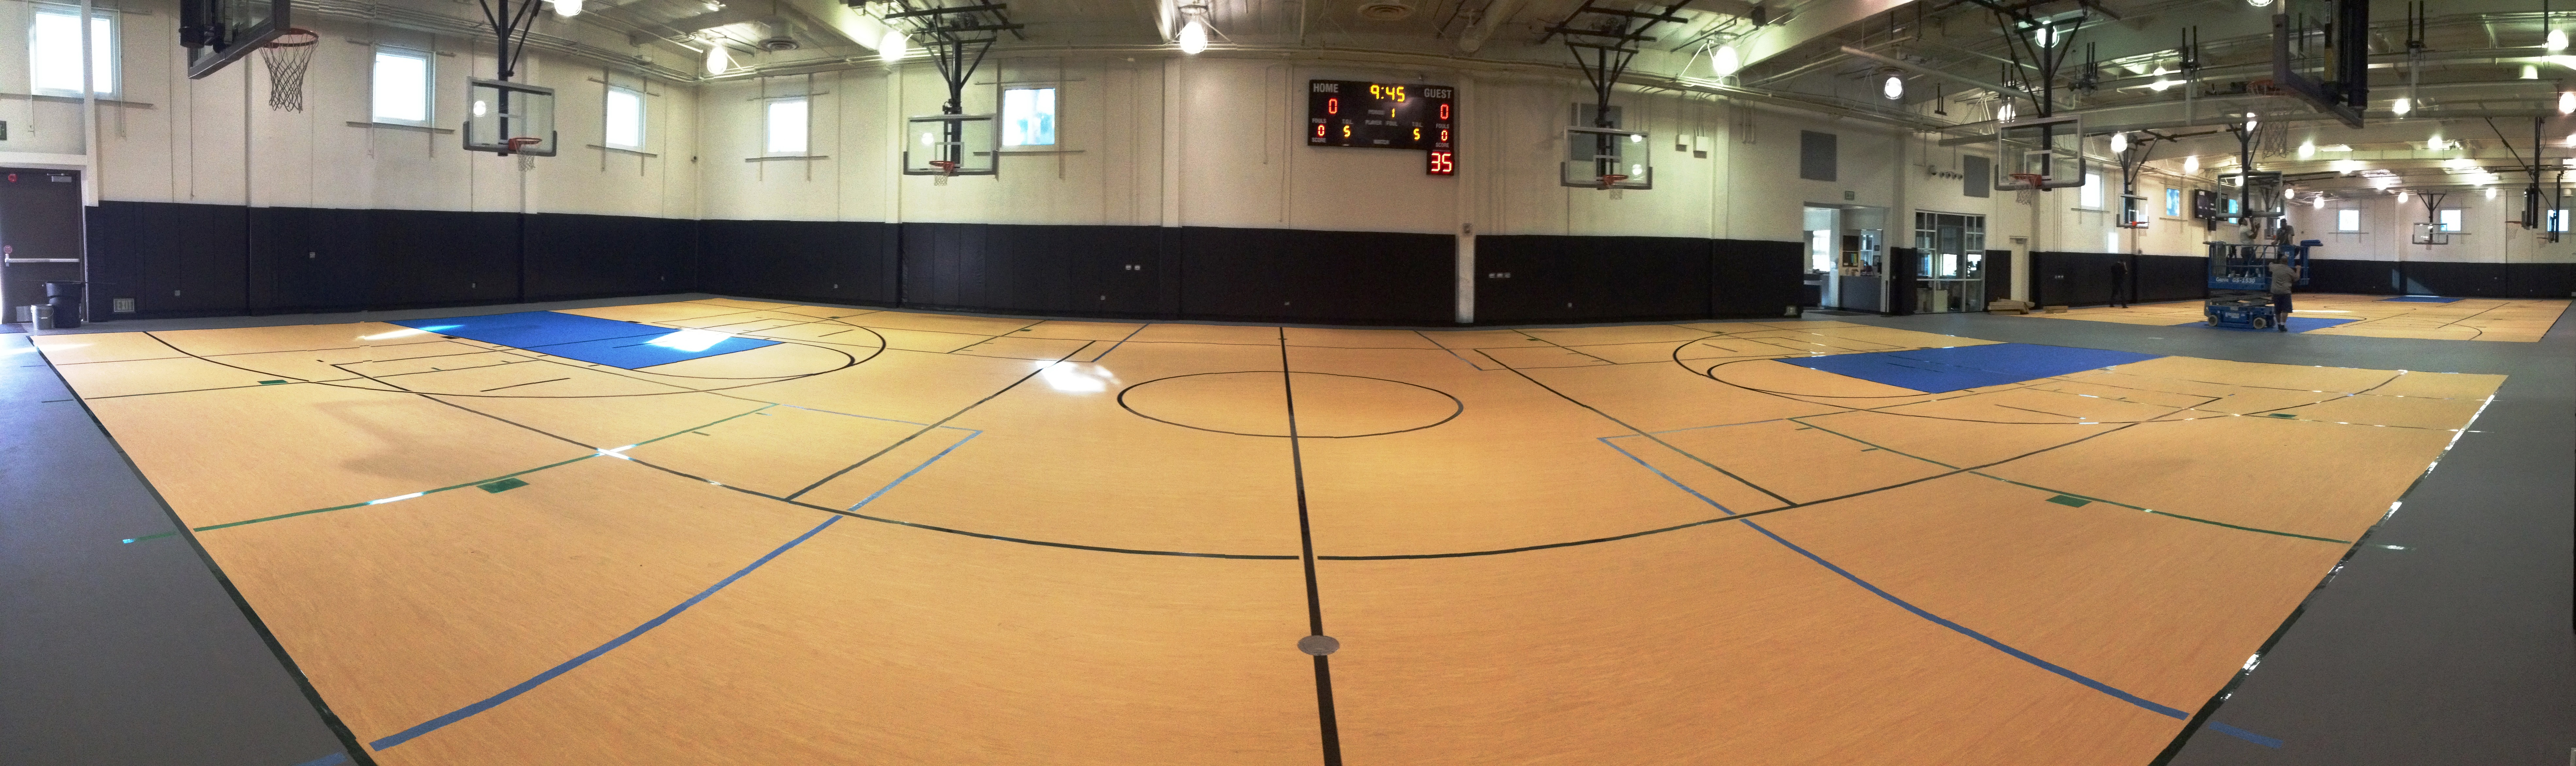 Sports Complex Gym Pano